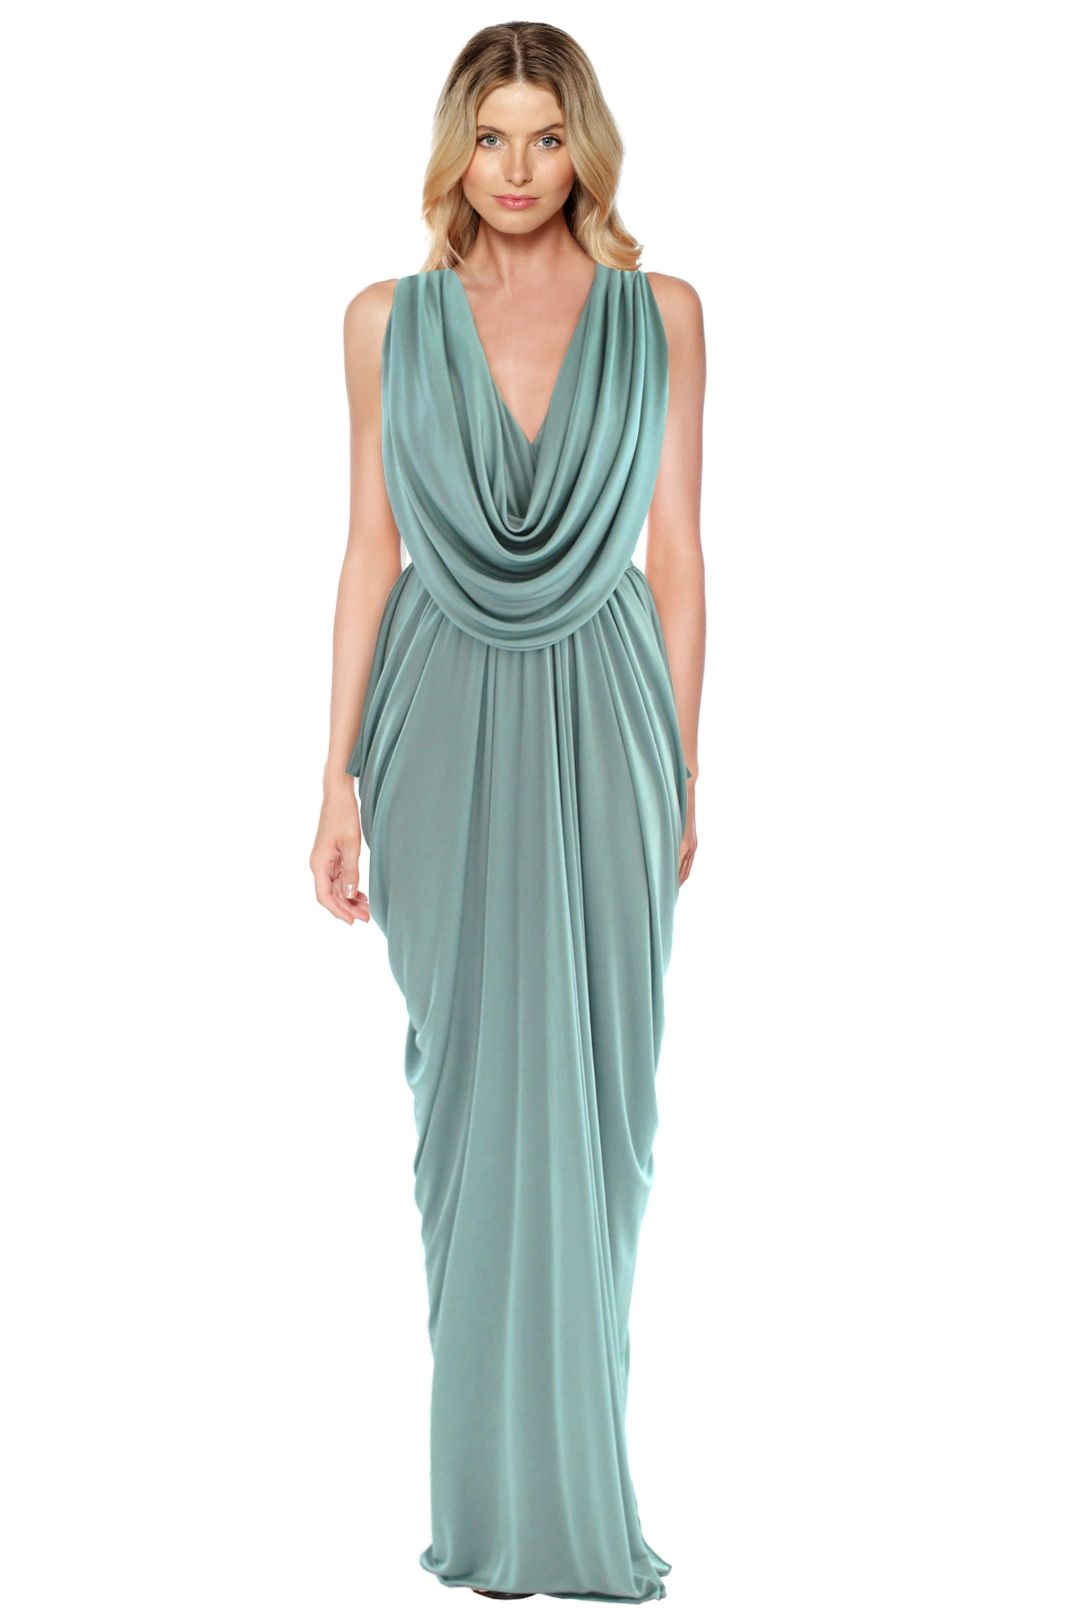 Sheike - Grecian Maxi Dress - Mint - Front